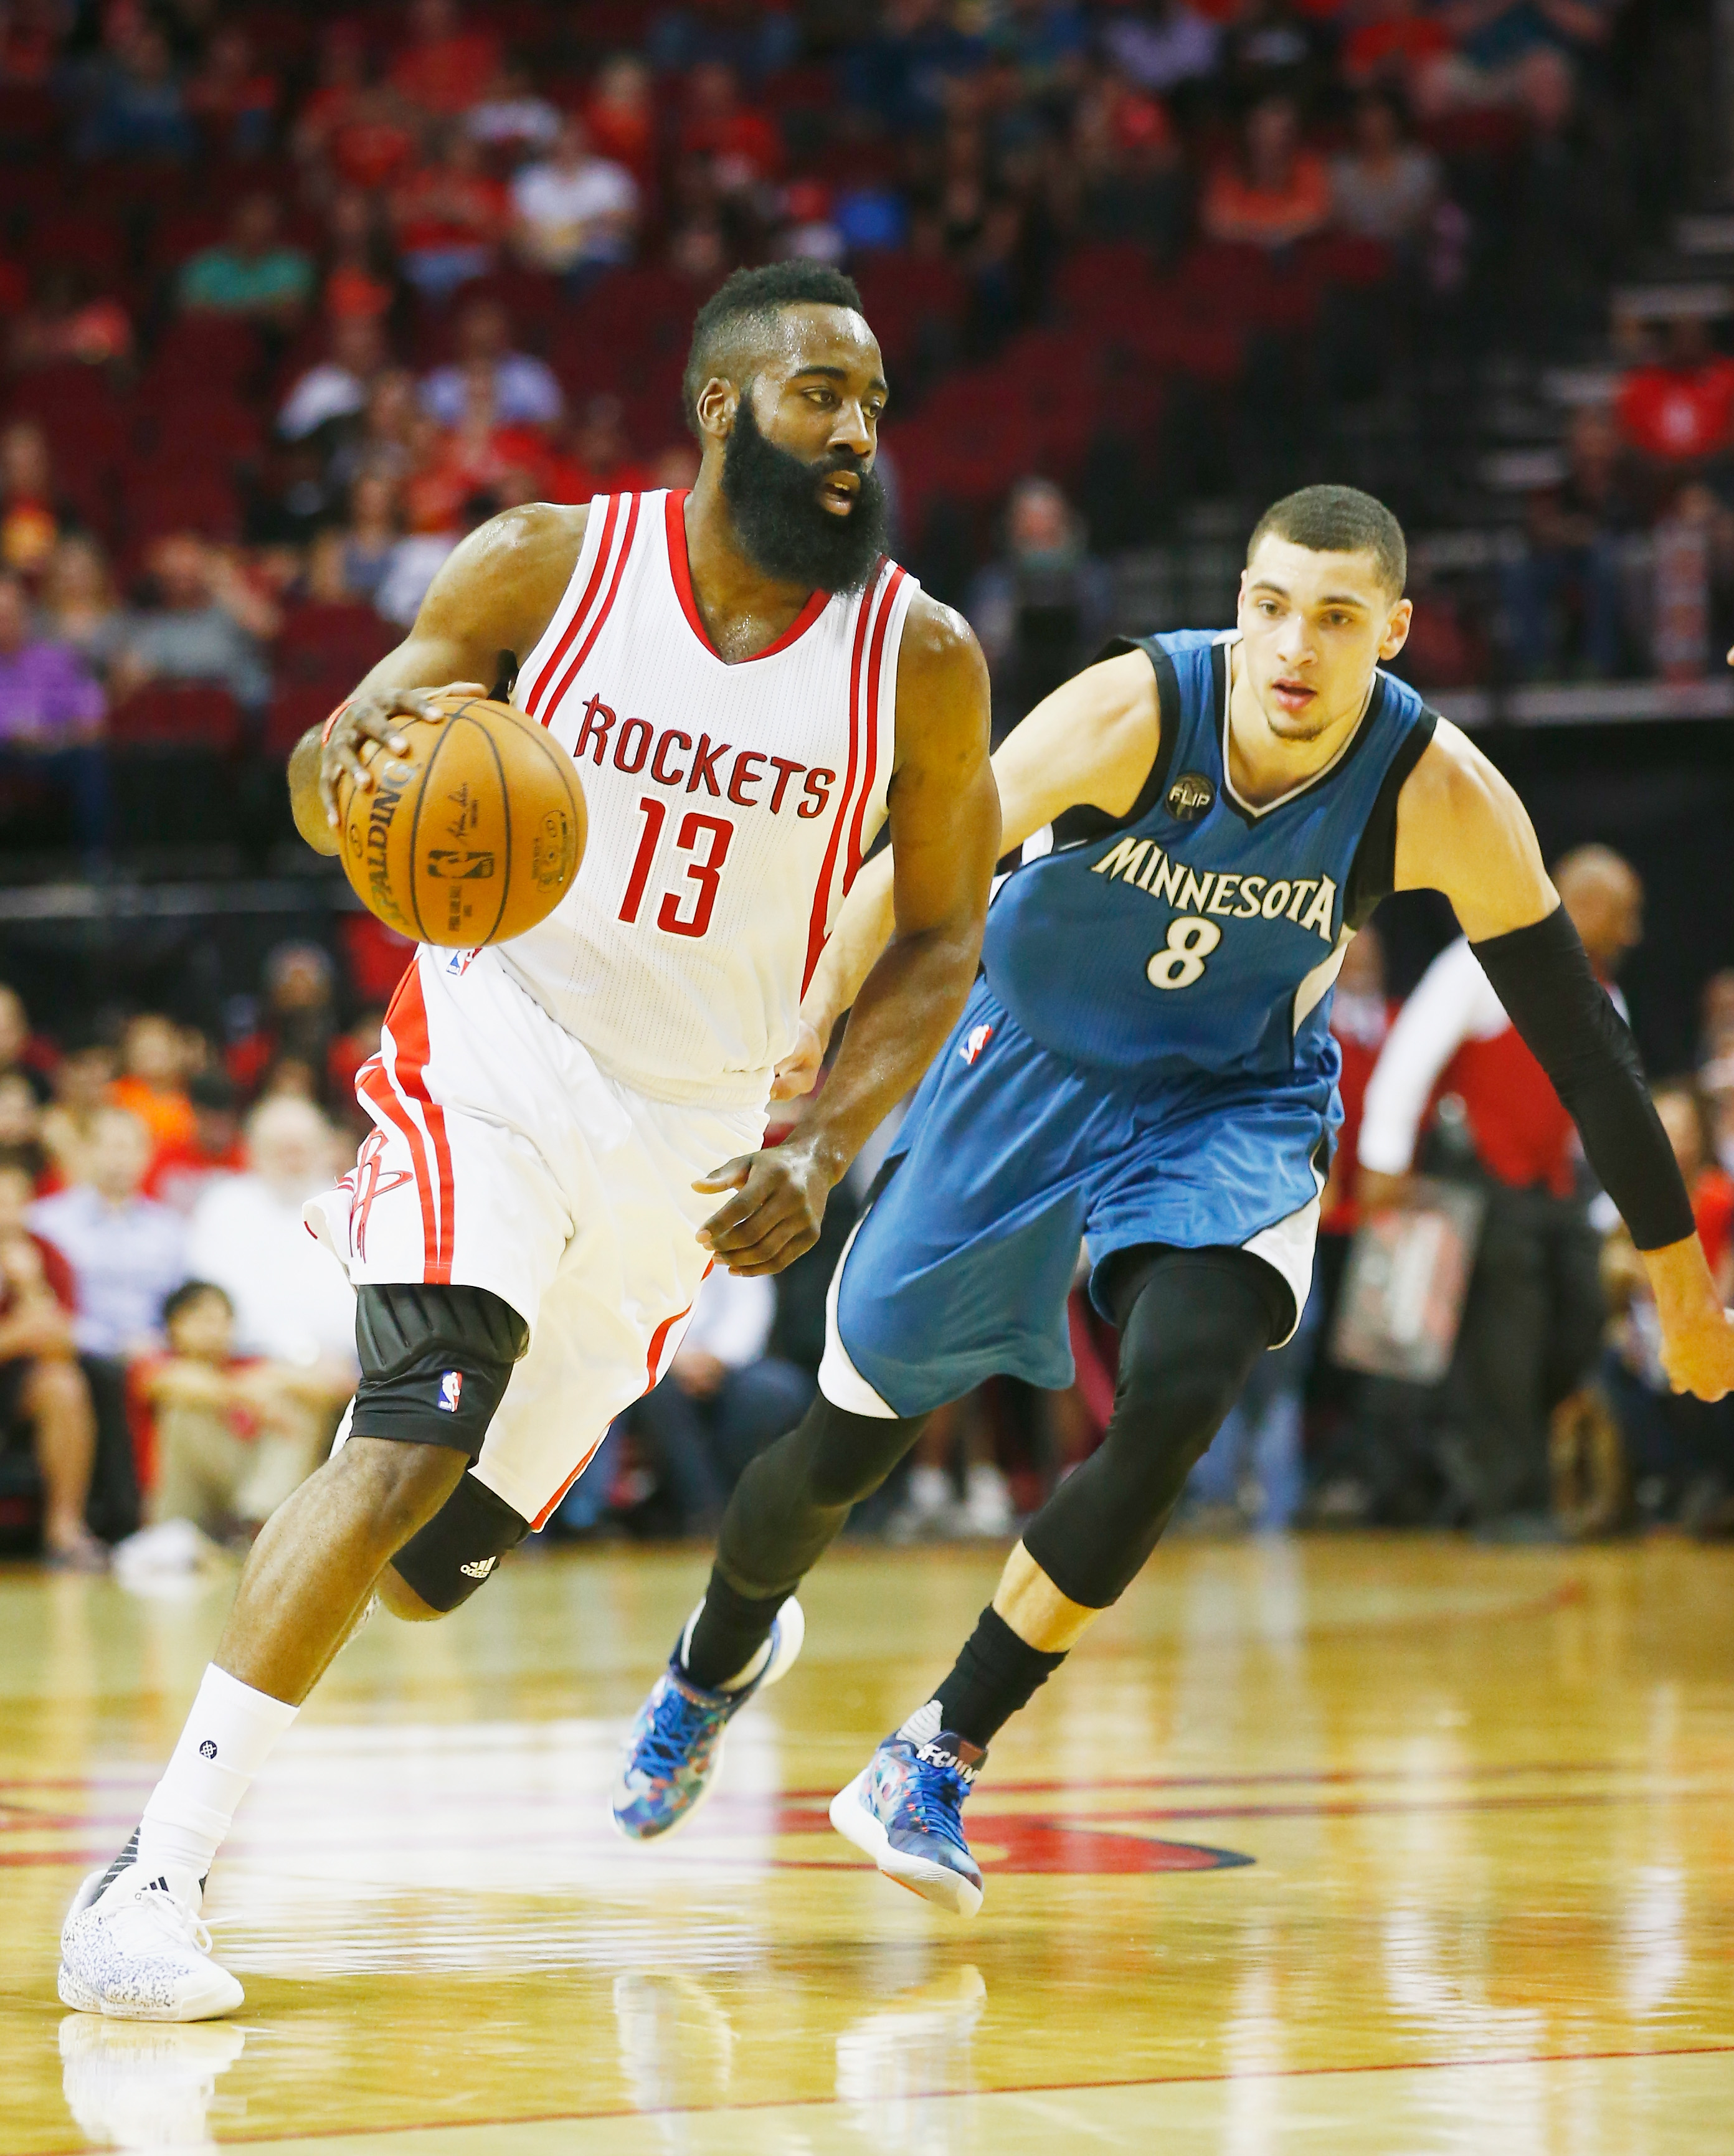 HOUSTON, TX - MARCH 18:  James Harden #13 of the Houston Rockets  drives with the basketball against Zach LaVine #8 of the Minnesota Timberwolves during their game at the Toyota Center on March 18, 2016 in Houston, Texas.  (Photo by Scott Halleran/Getty I